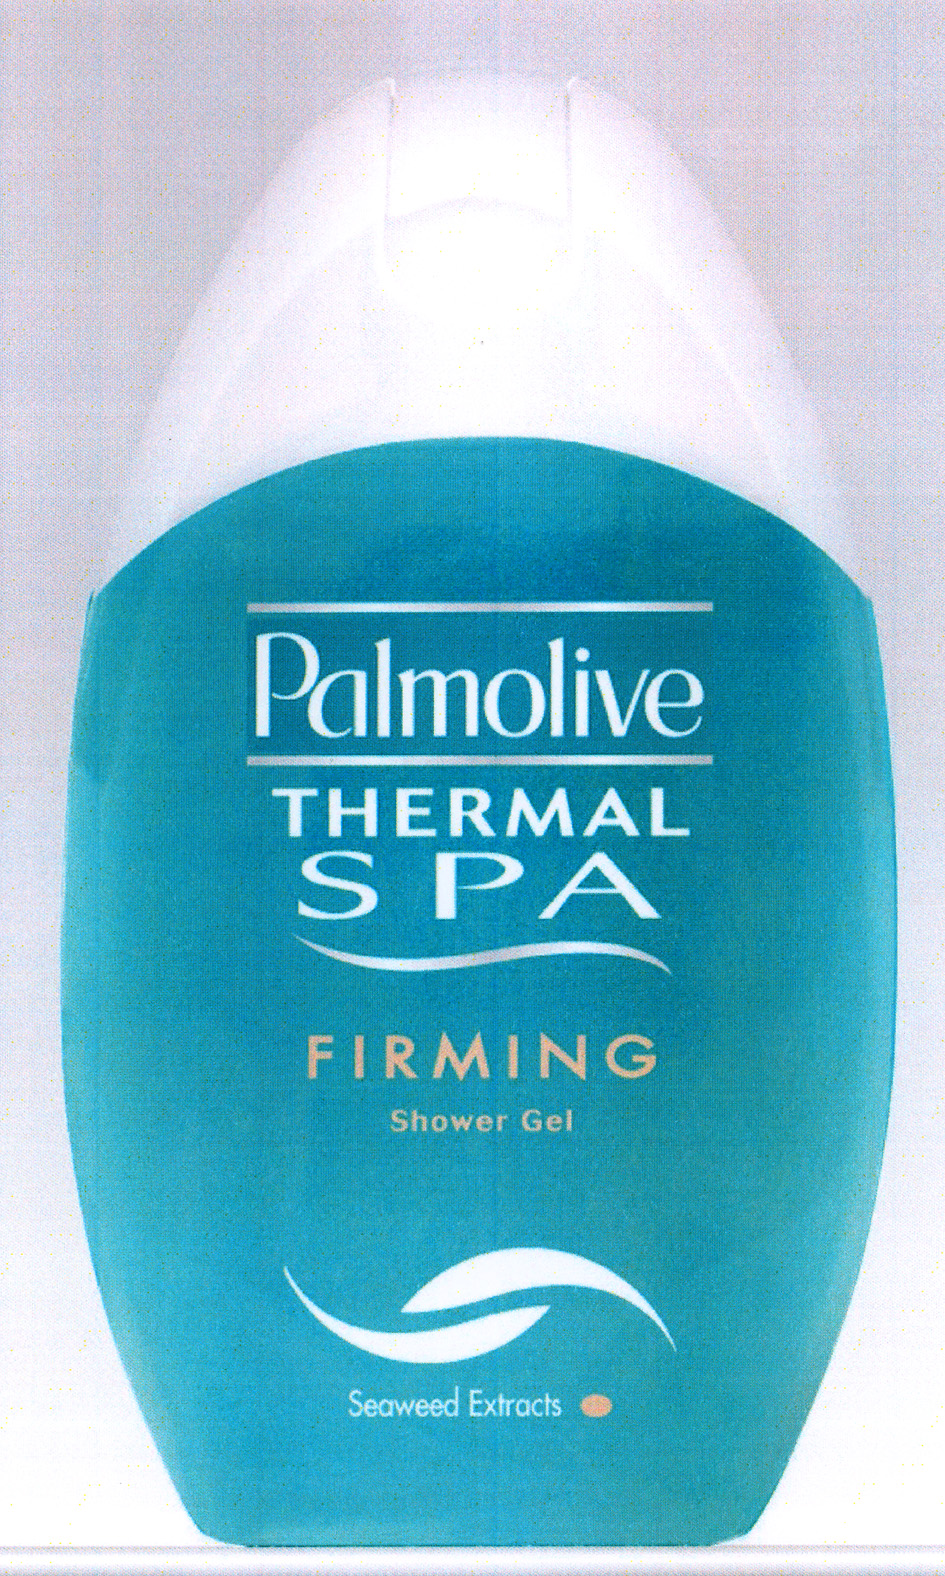 Palmolive THERMAL SPA FIRMING Shower Gel Seaweed Extracts